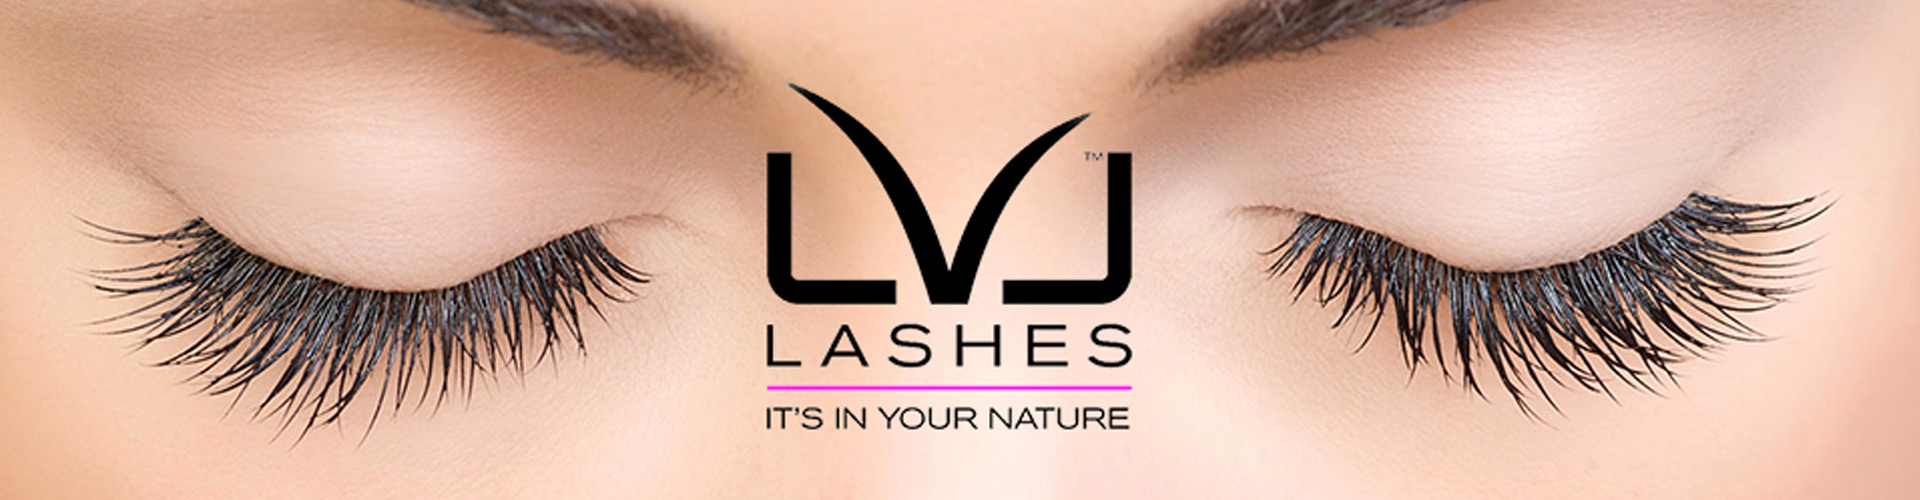 LVL Lashes Flawless Faces | Stamford Clinic